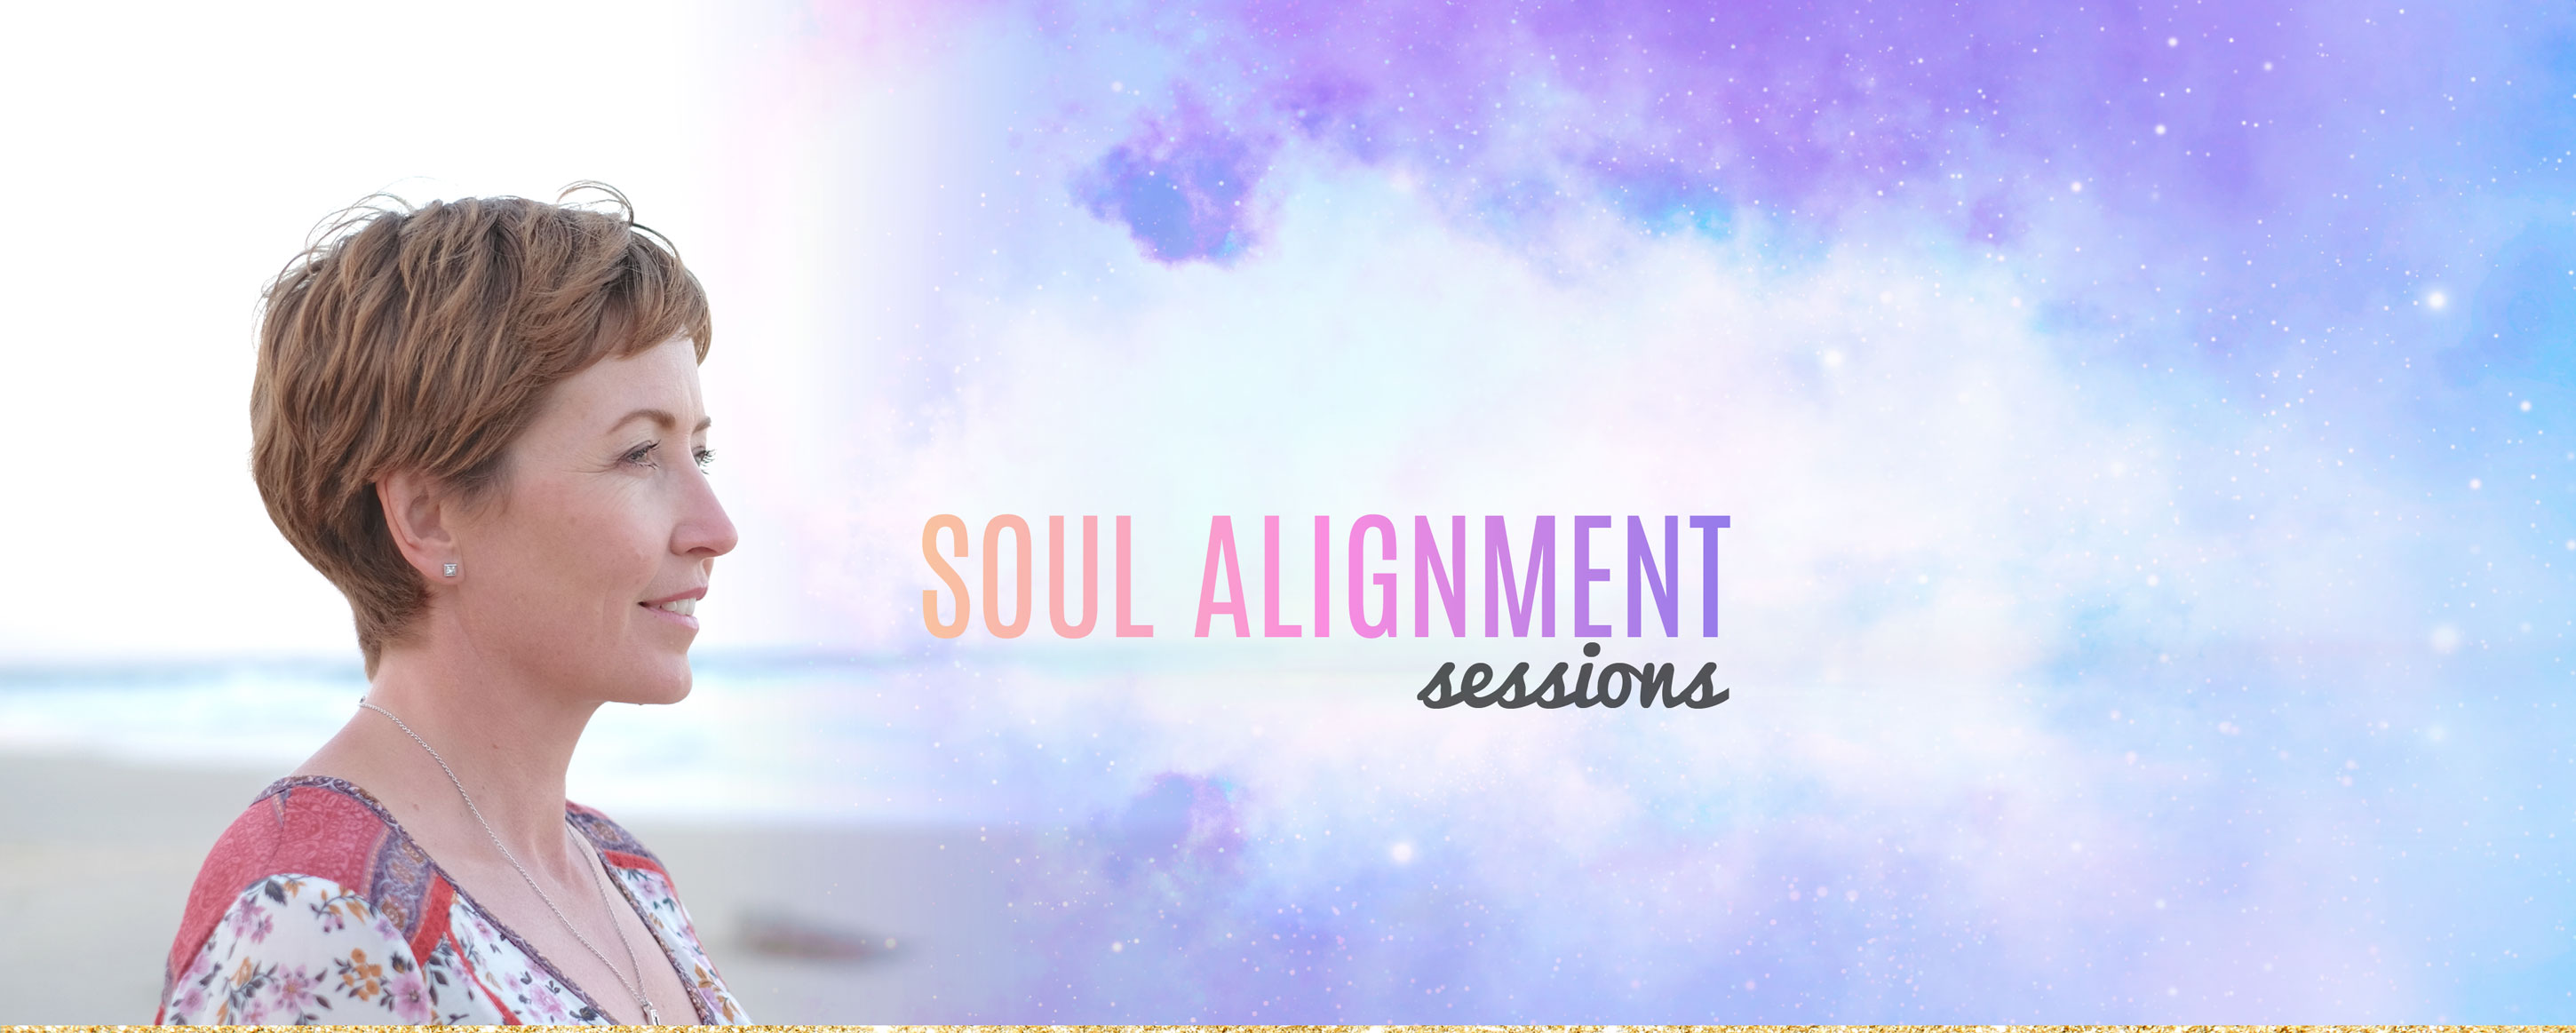 soul-alignment-sessions-banner-v1